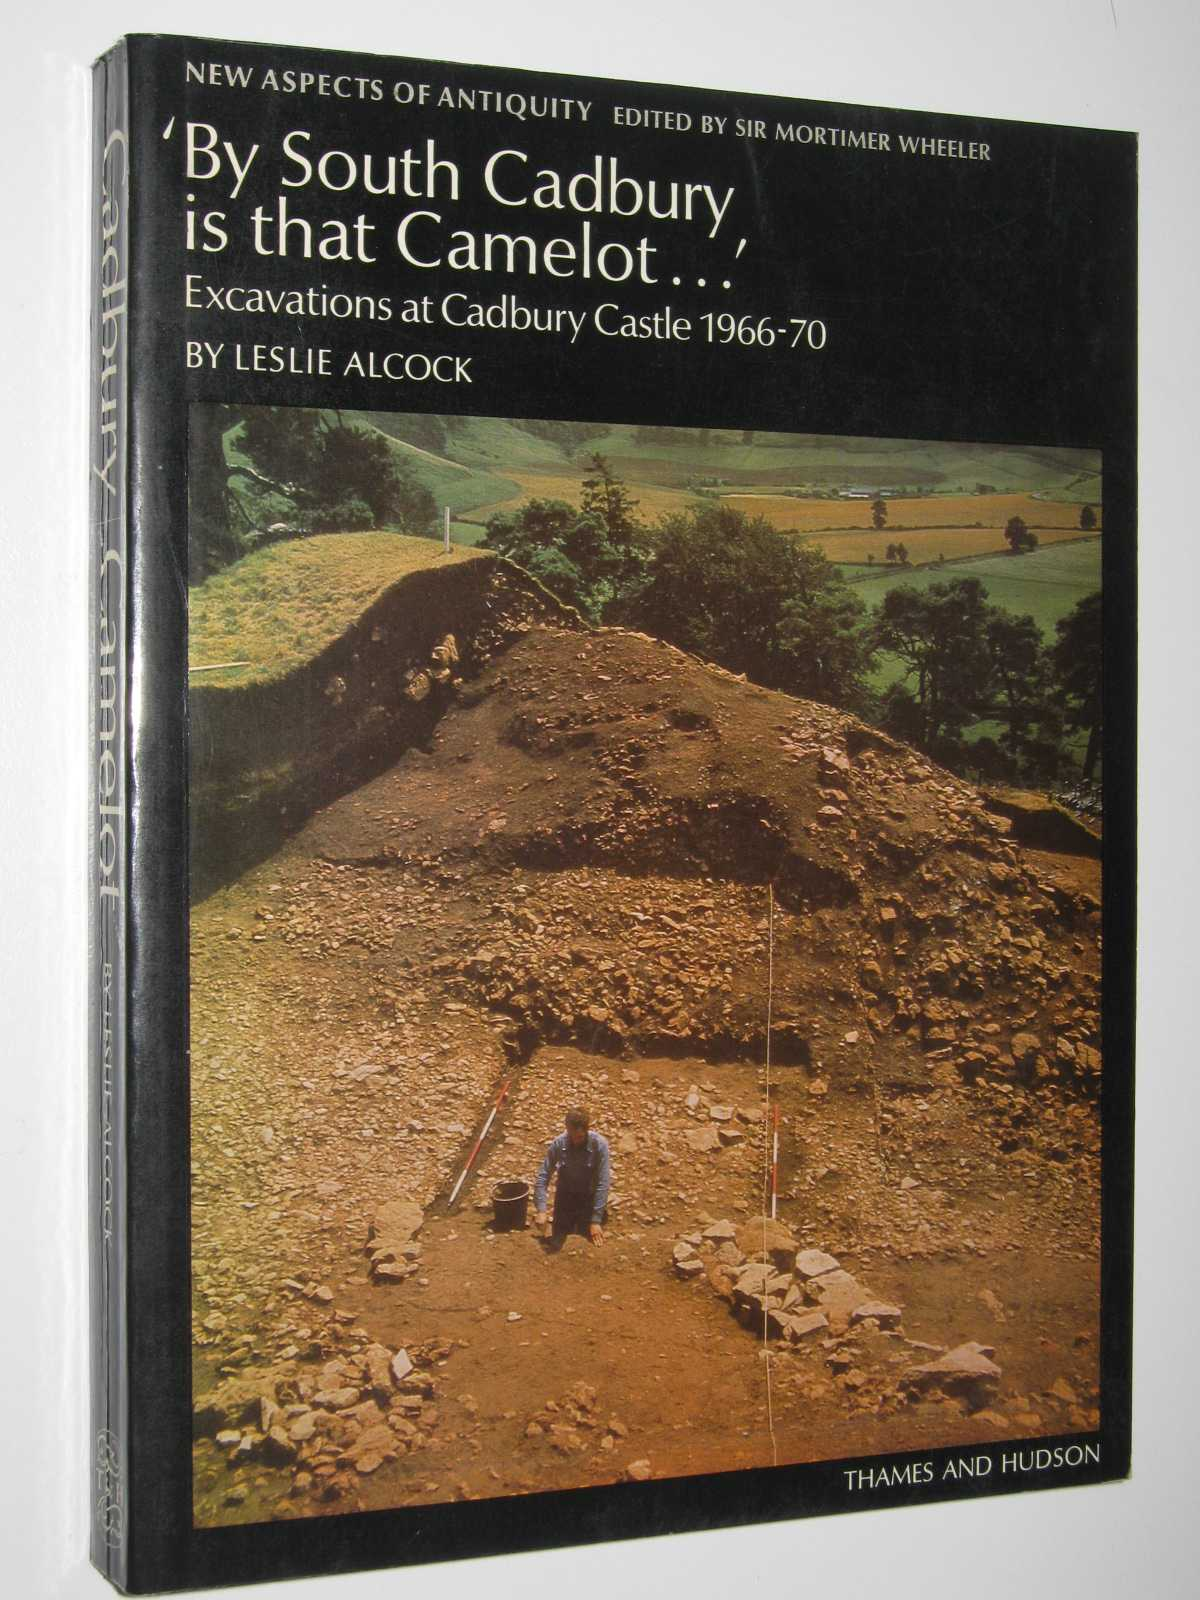 Image for 'By South Cadbury is that Camelot...' : New Aspect of Antiquity